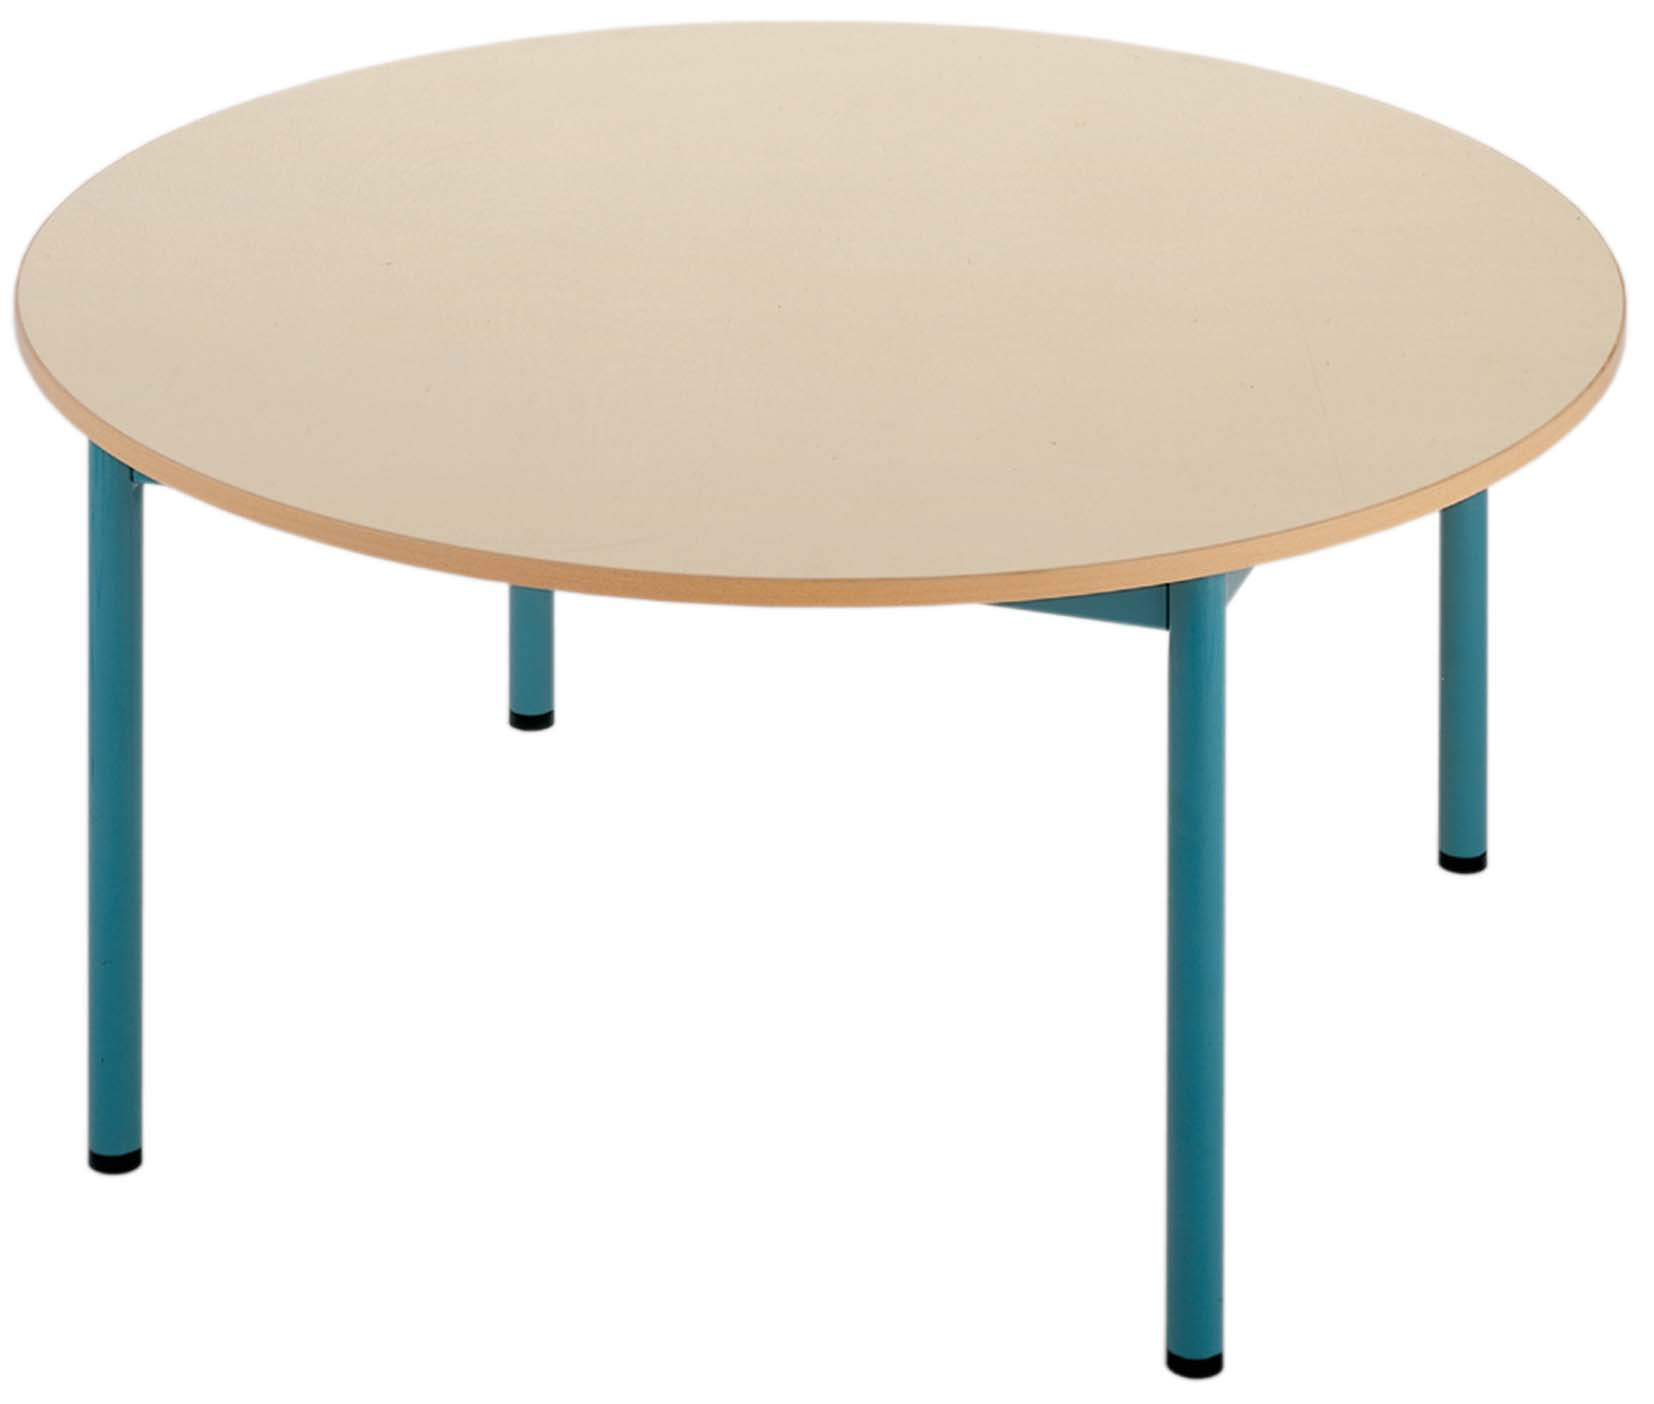 Table maternelle fixe Ronde